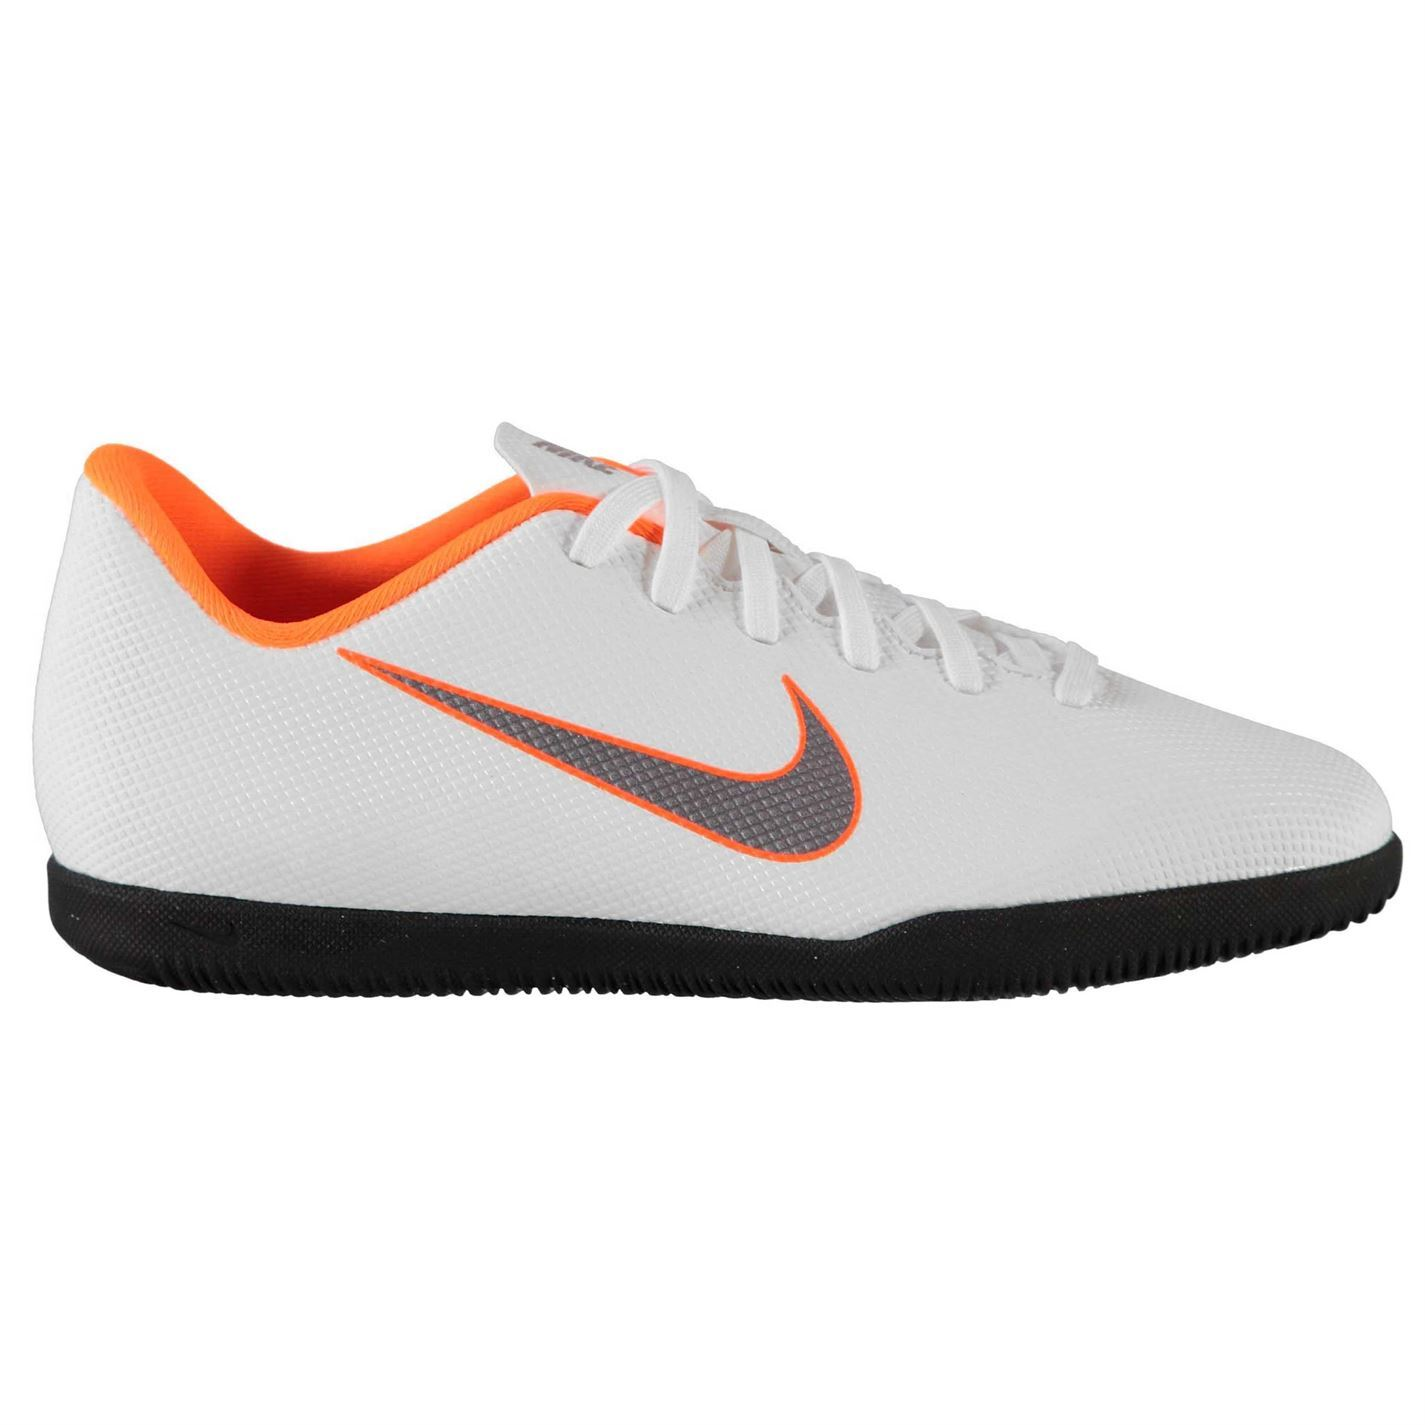 d52f0e7358e Soccer Club Indoor Vapor Juniors Mercurial Football Trainers Nike qE0tpwq